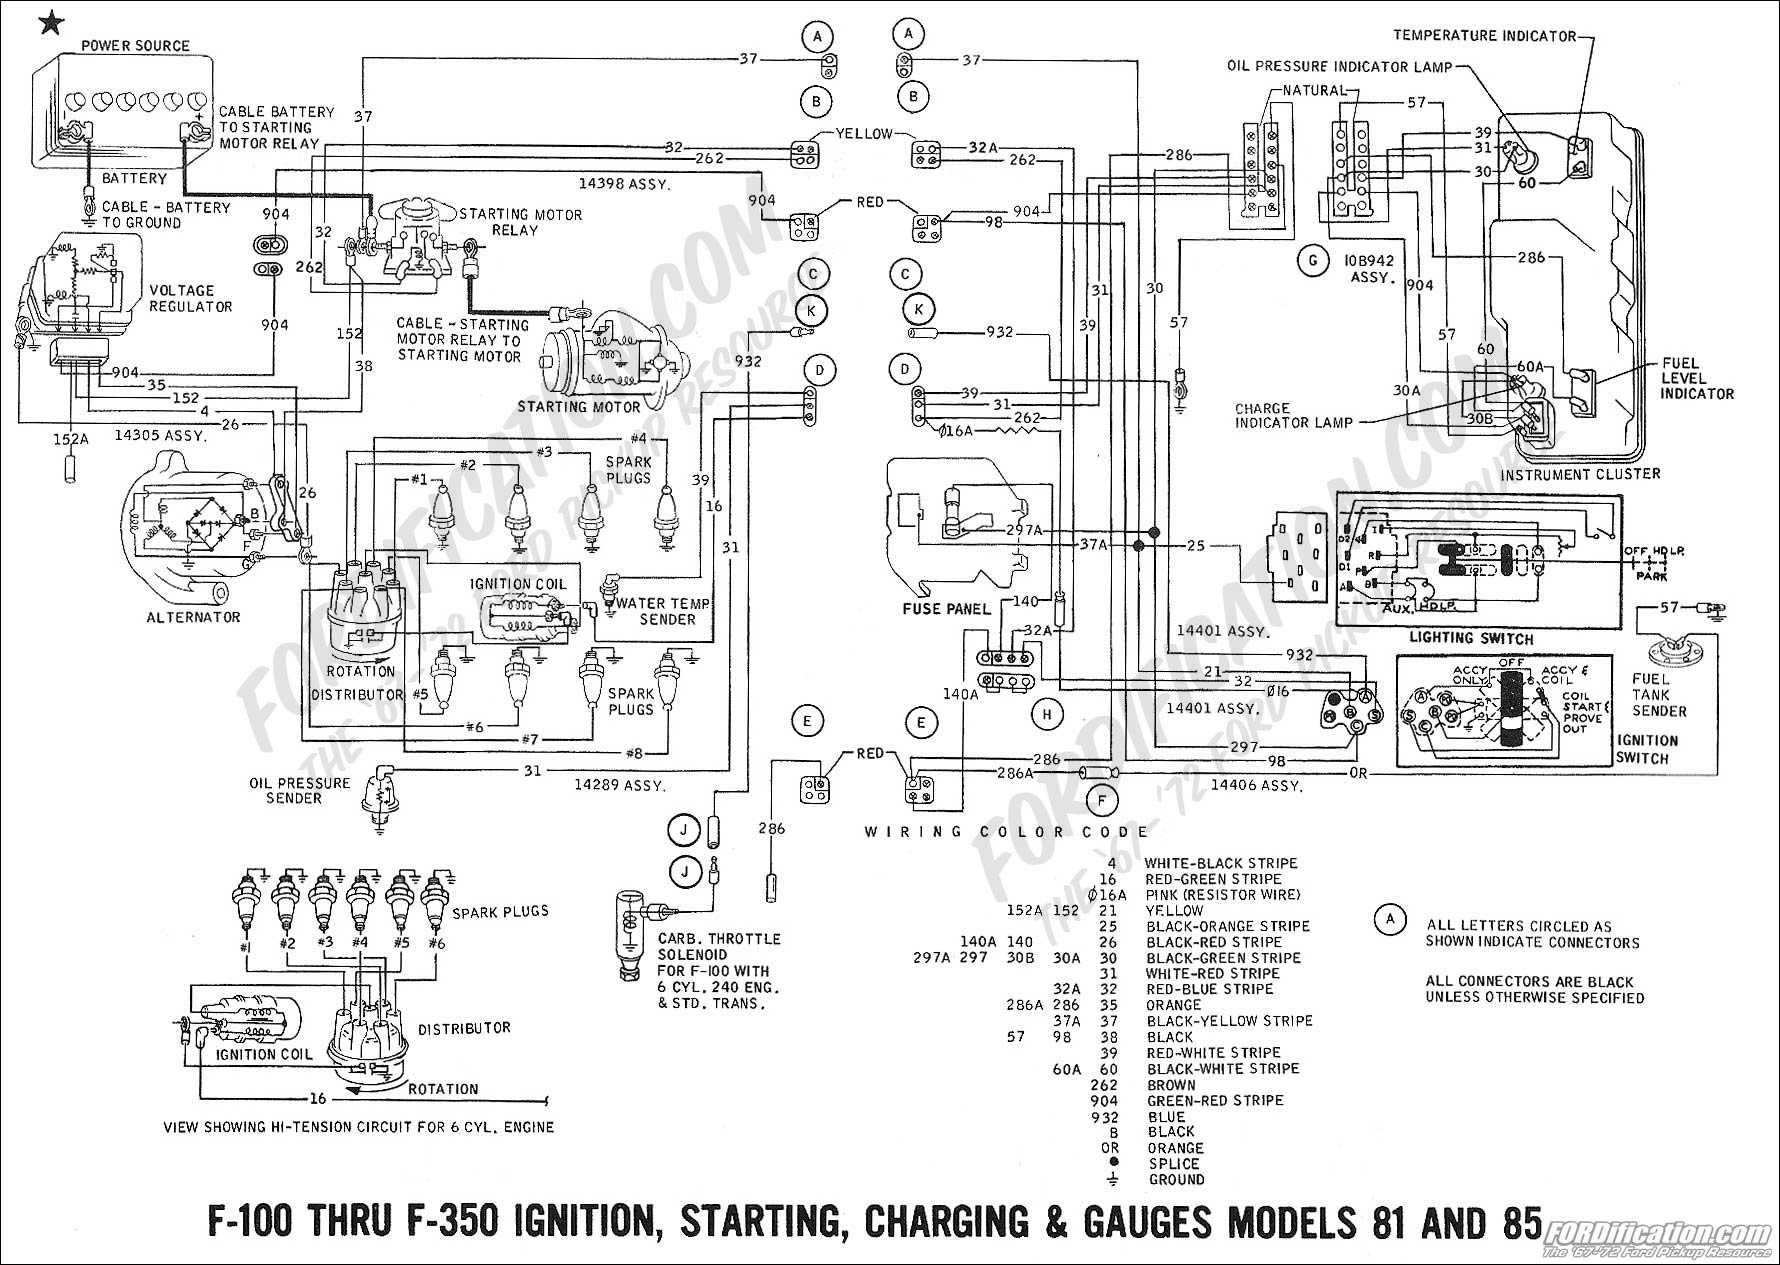 f350 alternator wiring diagram index listing of wiring diagrams1979 ford f 350 alternator wiring diagram wiring diagramsford f 250 wiring schematic 1997 powerstroke diesel